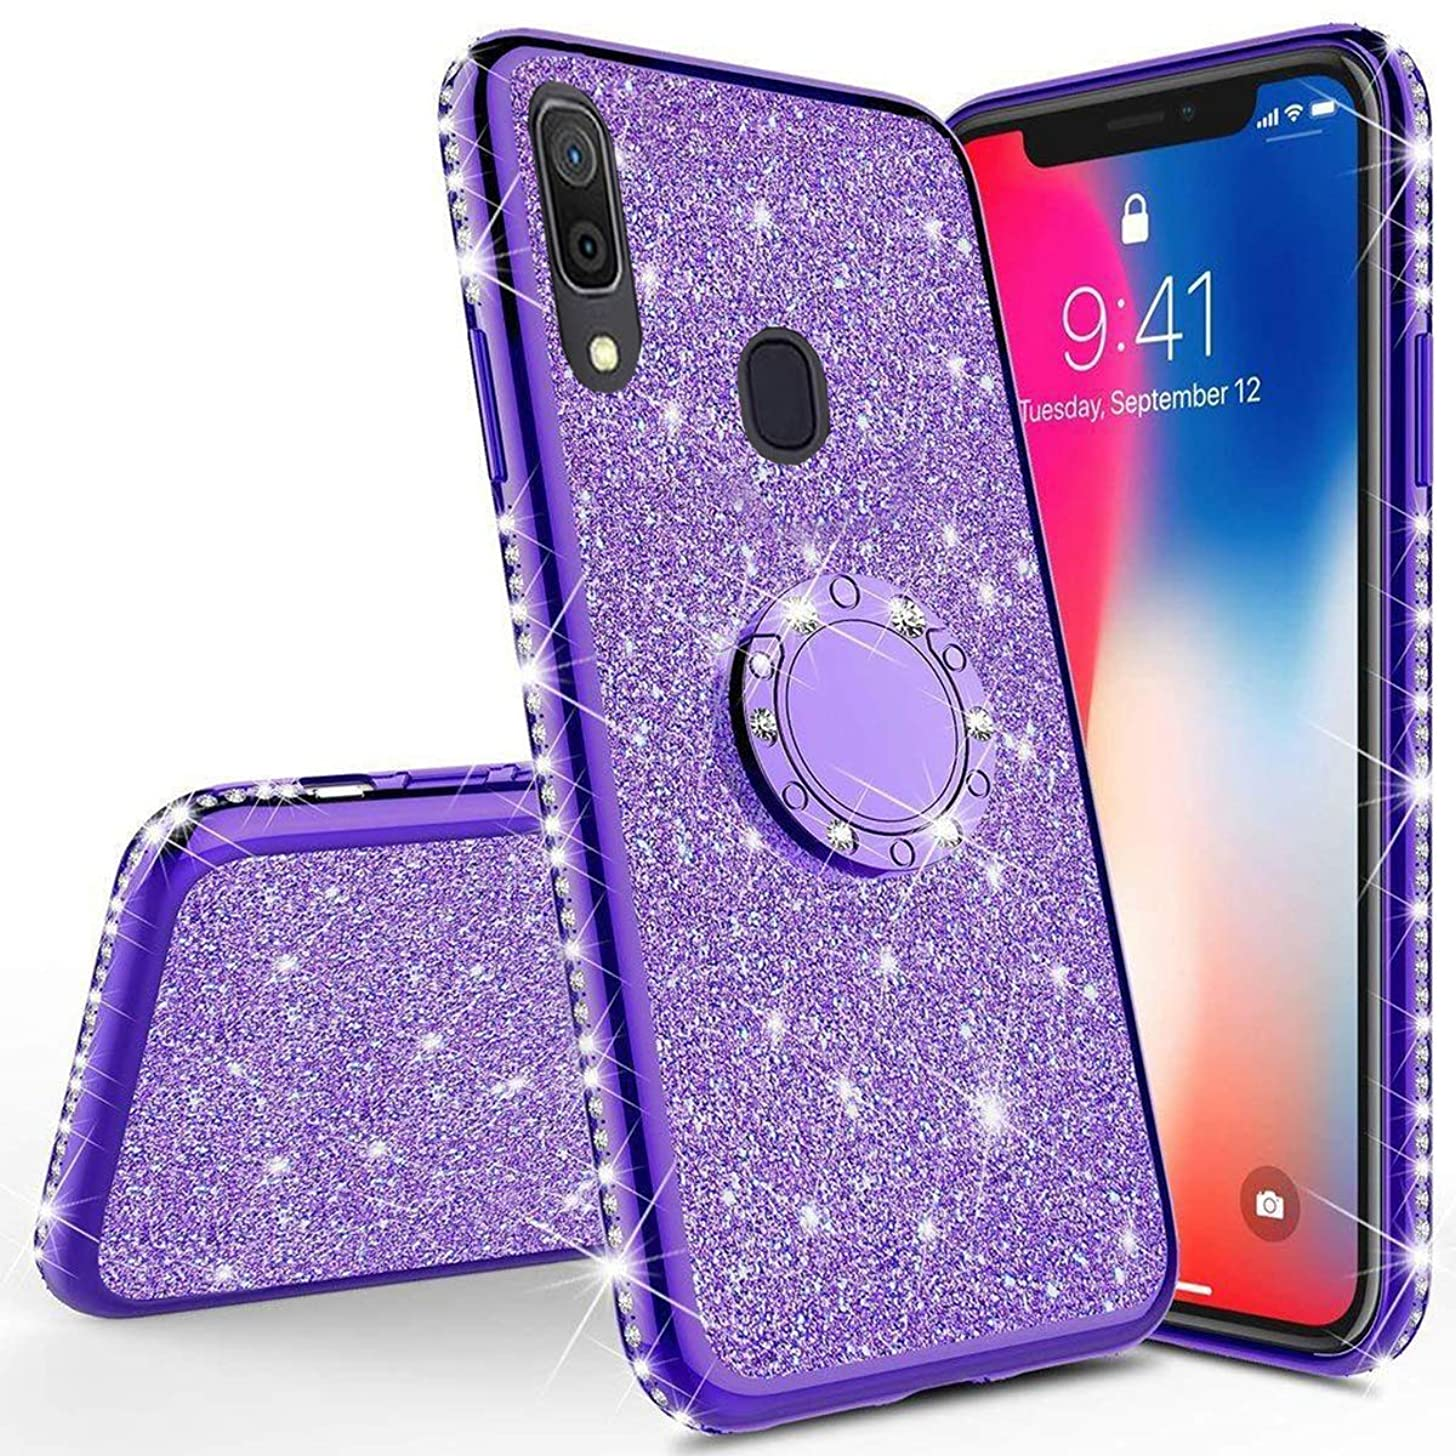 Herbests Compatible with Samsung Galaxy A40 Glitter Case with Ring Holder Kickstand for Women Girls Rhinestone Diamond Sparkle Bling Crystal TPU Rubber Silicone Cover Phone Case,Purple